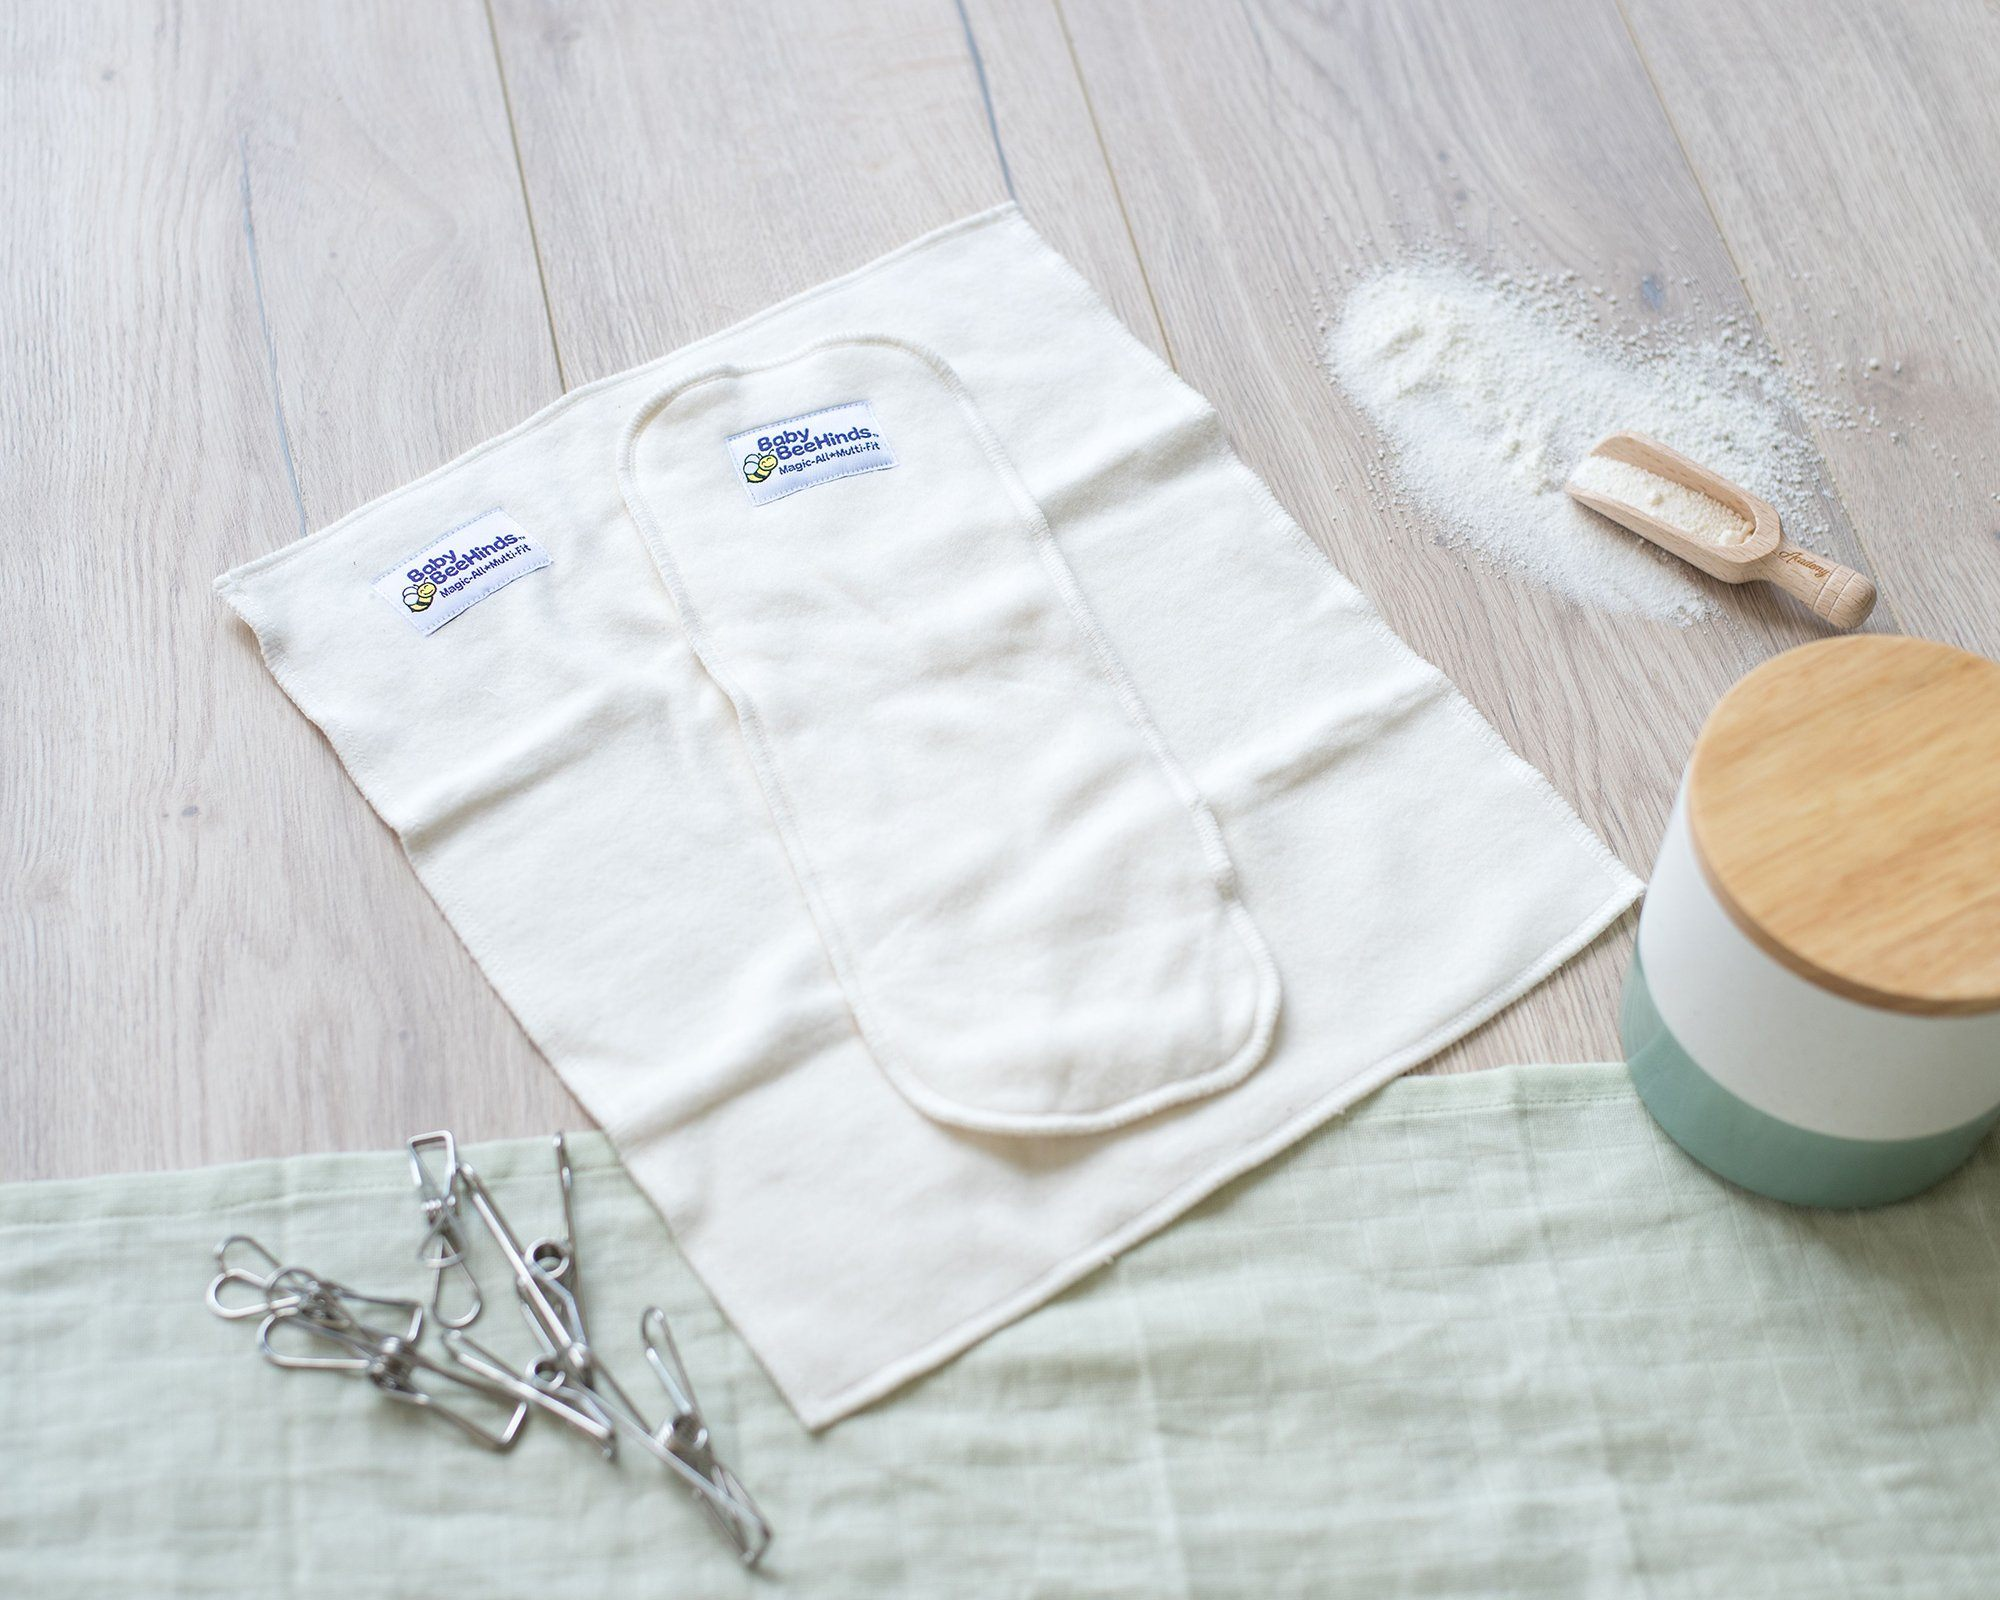 Baby BeeHinds Bamboo Fold-Ups SHOP MODERN CLOTH NAPPY INSERTS